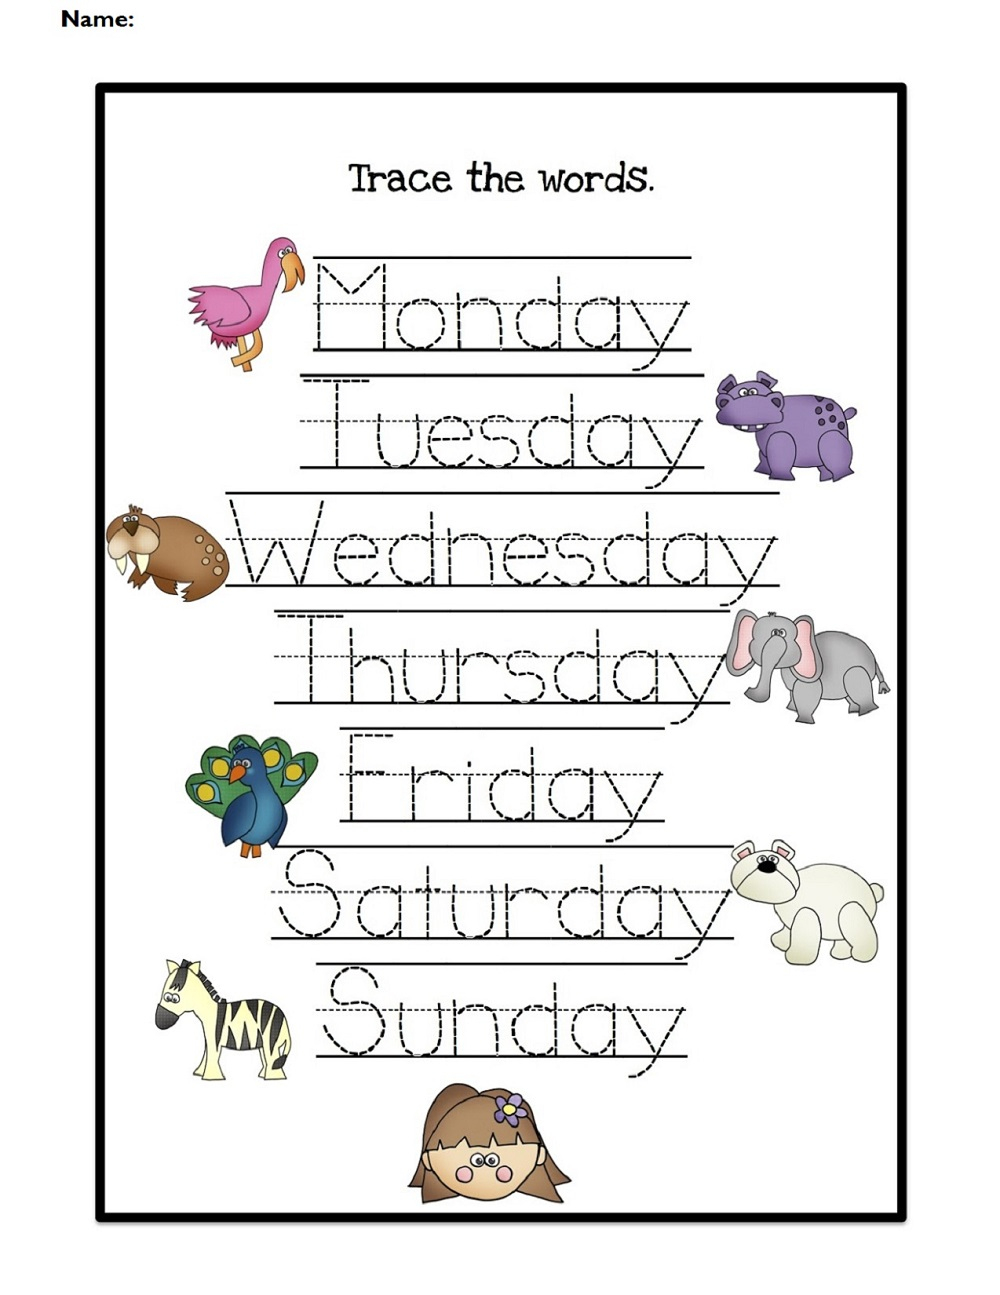 Worksheet For Days Of The Week For Kids | Kiddo Shelter | Free Printable Kindergarten Days Of The Week Worksheets